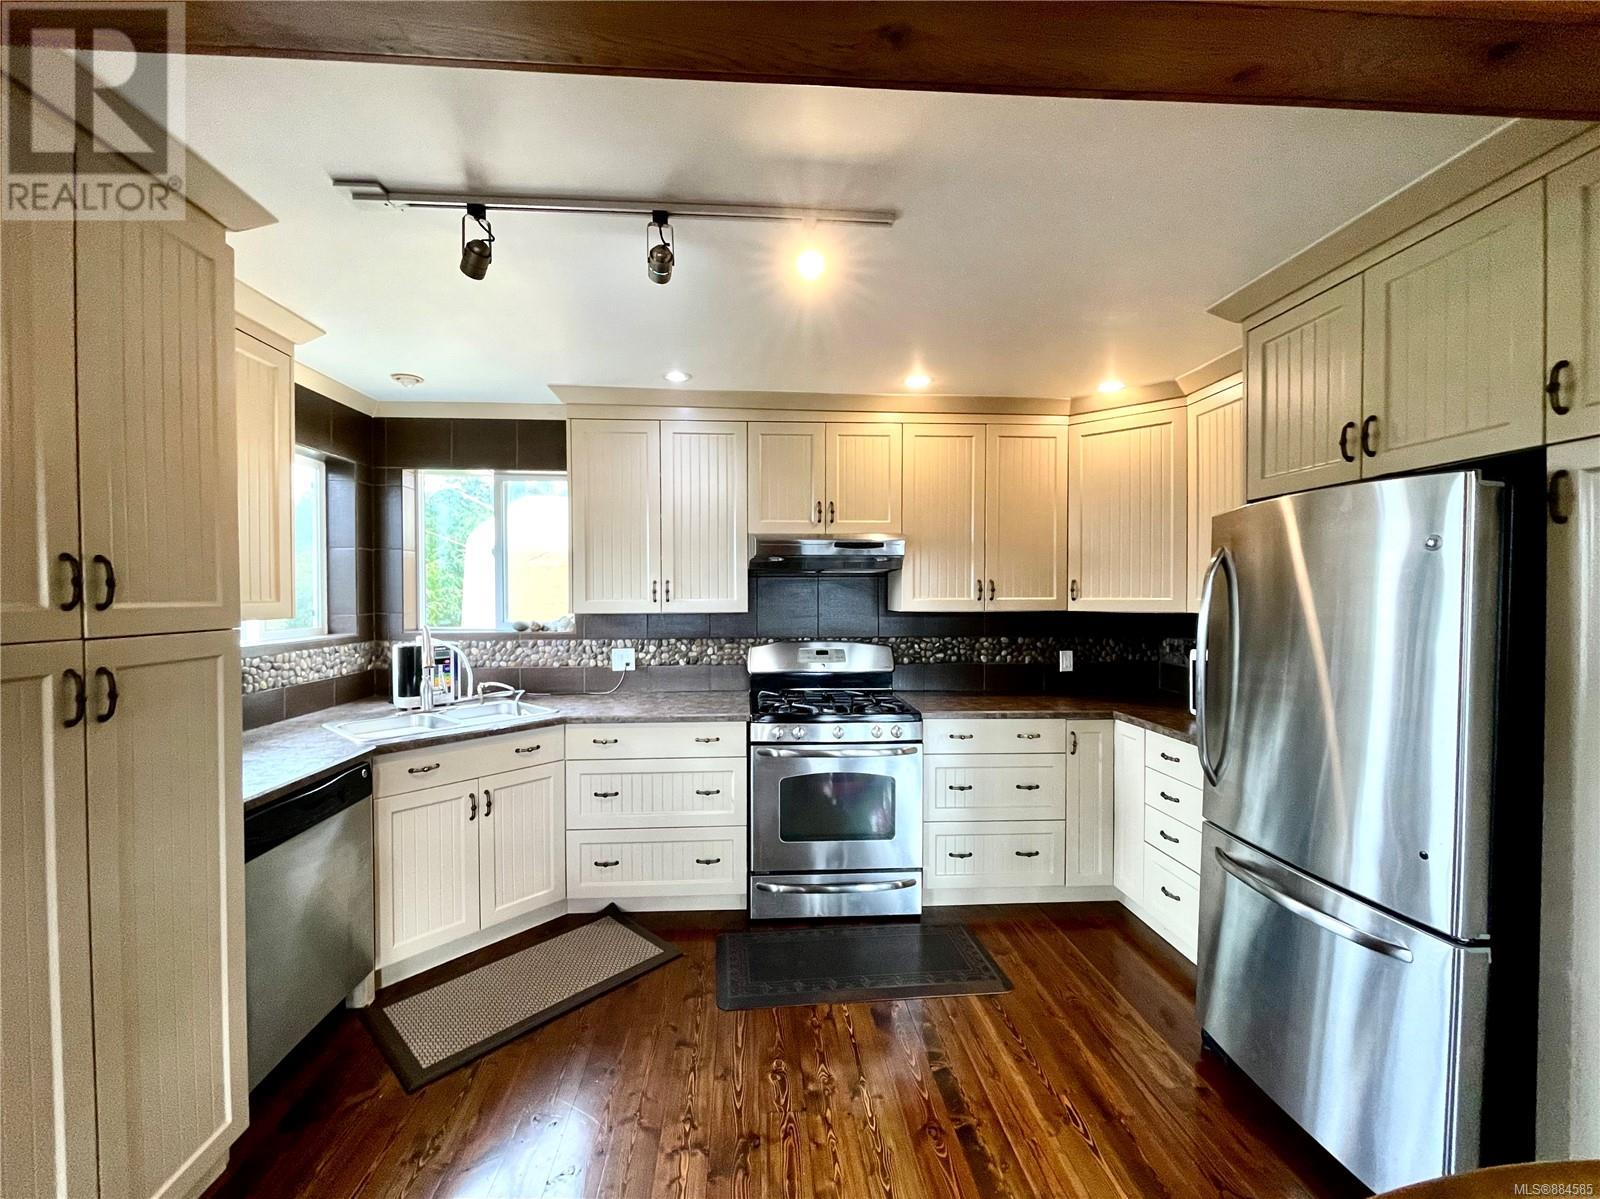 MLS® #884585 - Ucluelet House For sale Image #3